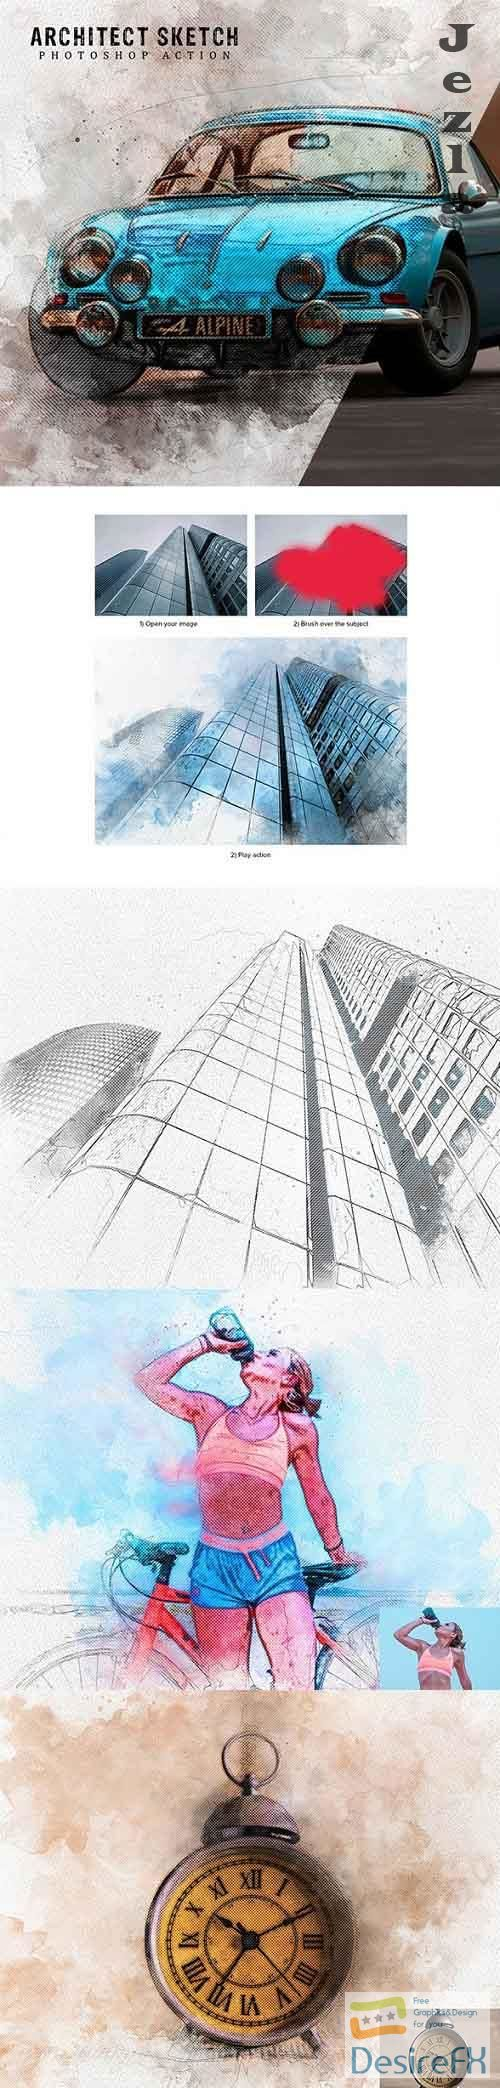 GraphicRiver - Architect Sketch Photoshop Action 28522875